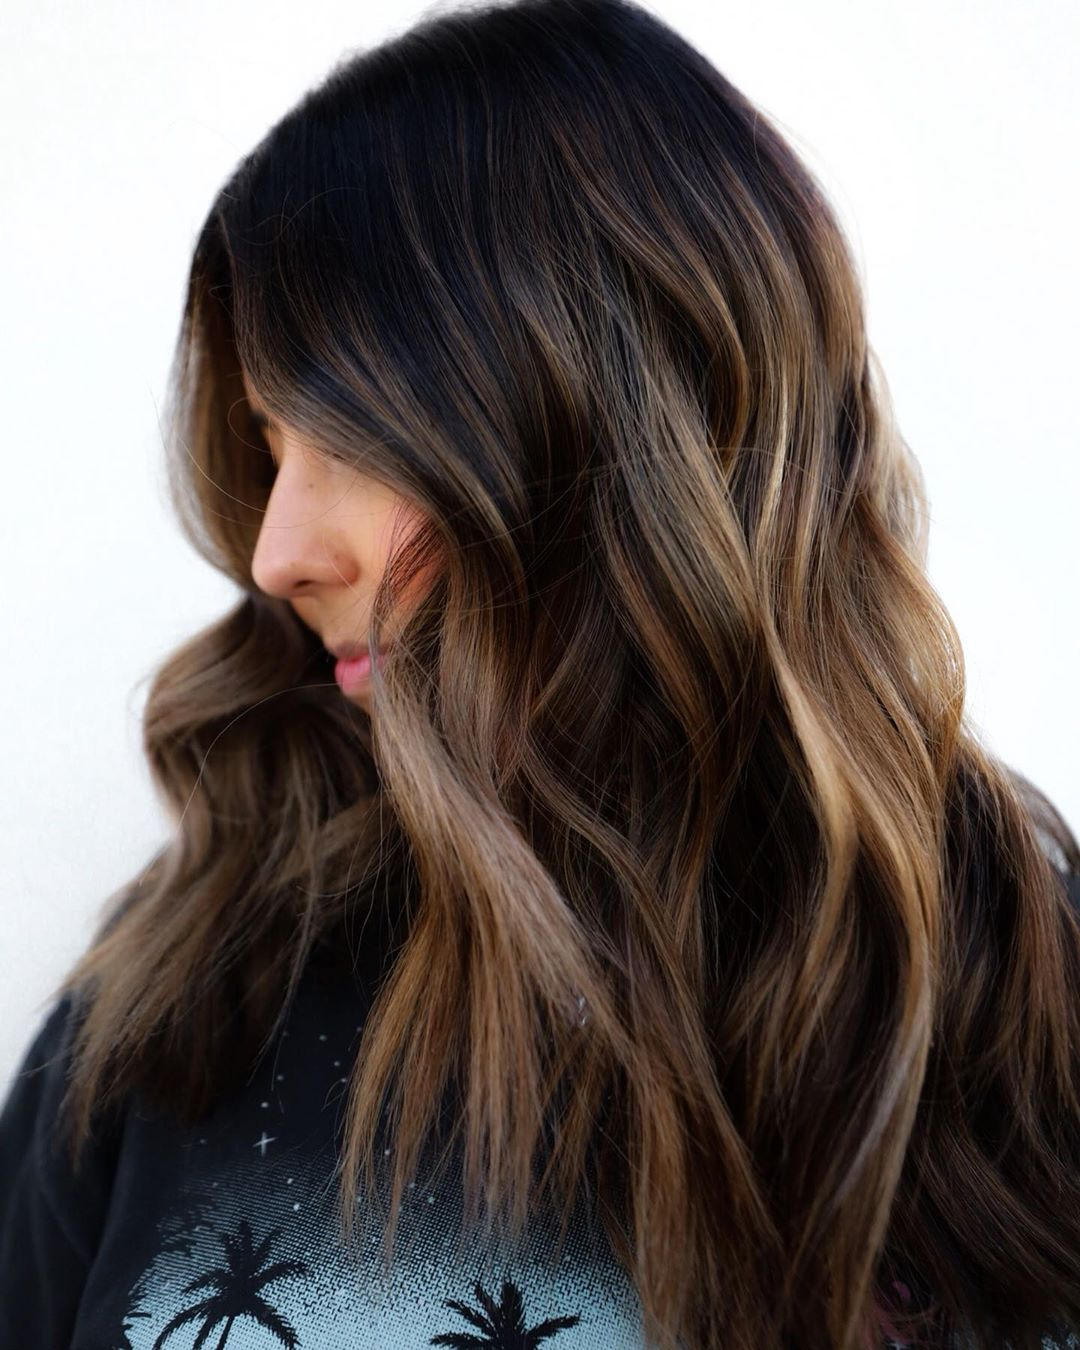 Chunky Highlights for Shoulder-Length Black Hair